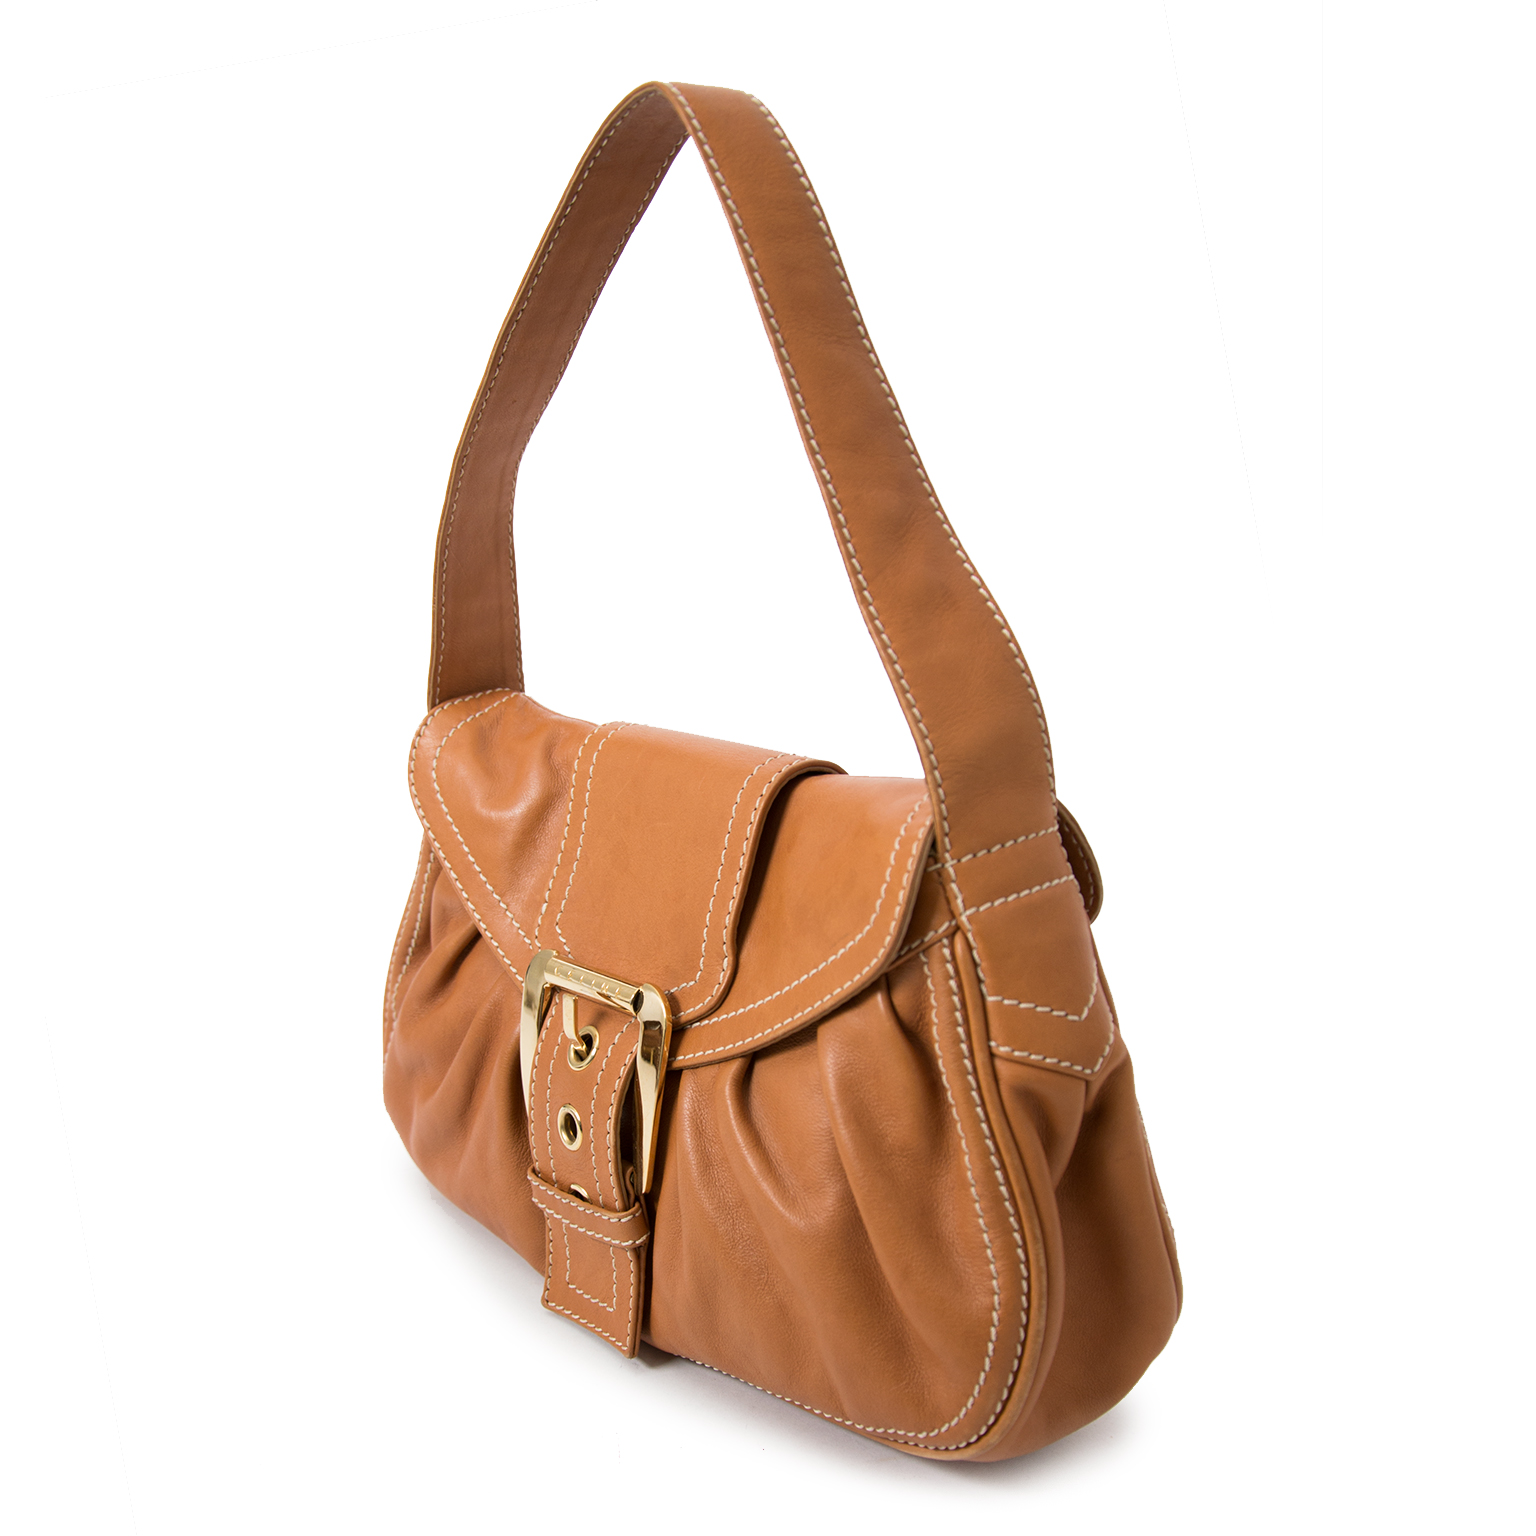 Buy safe and secure online at labellov.com for the best price celine brown shoulder bag